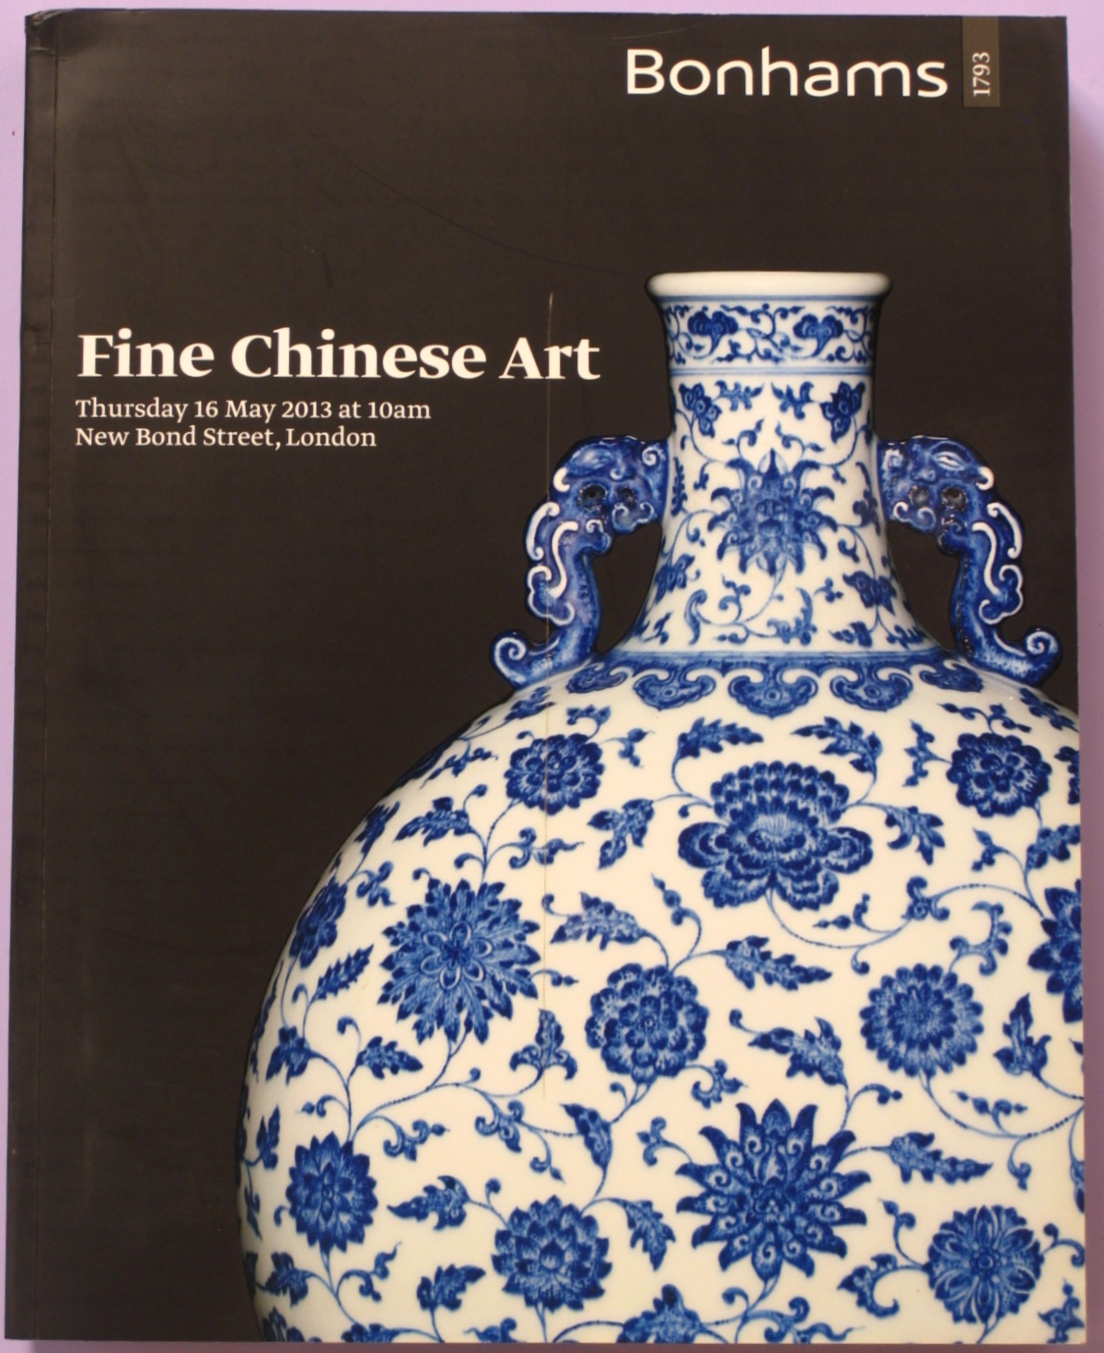 BL20130516: Bookshop: [2013] Bonhams london Fine Chinese Art